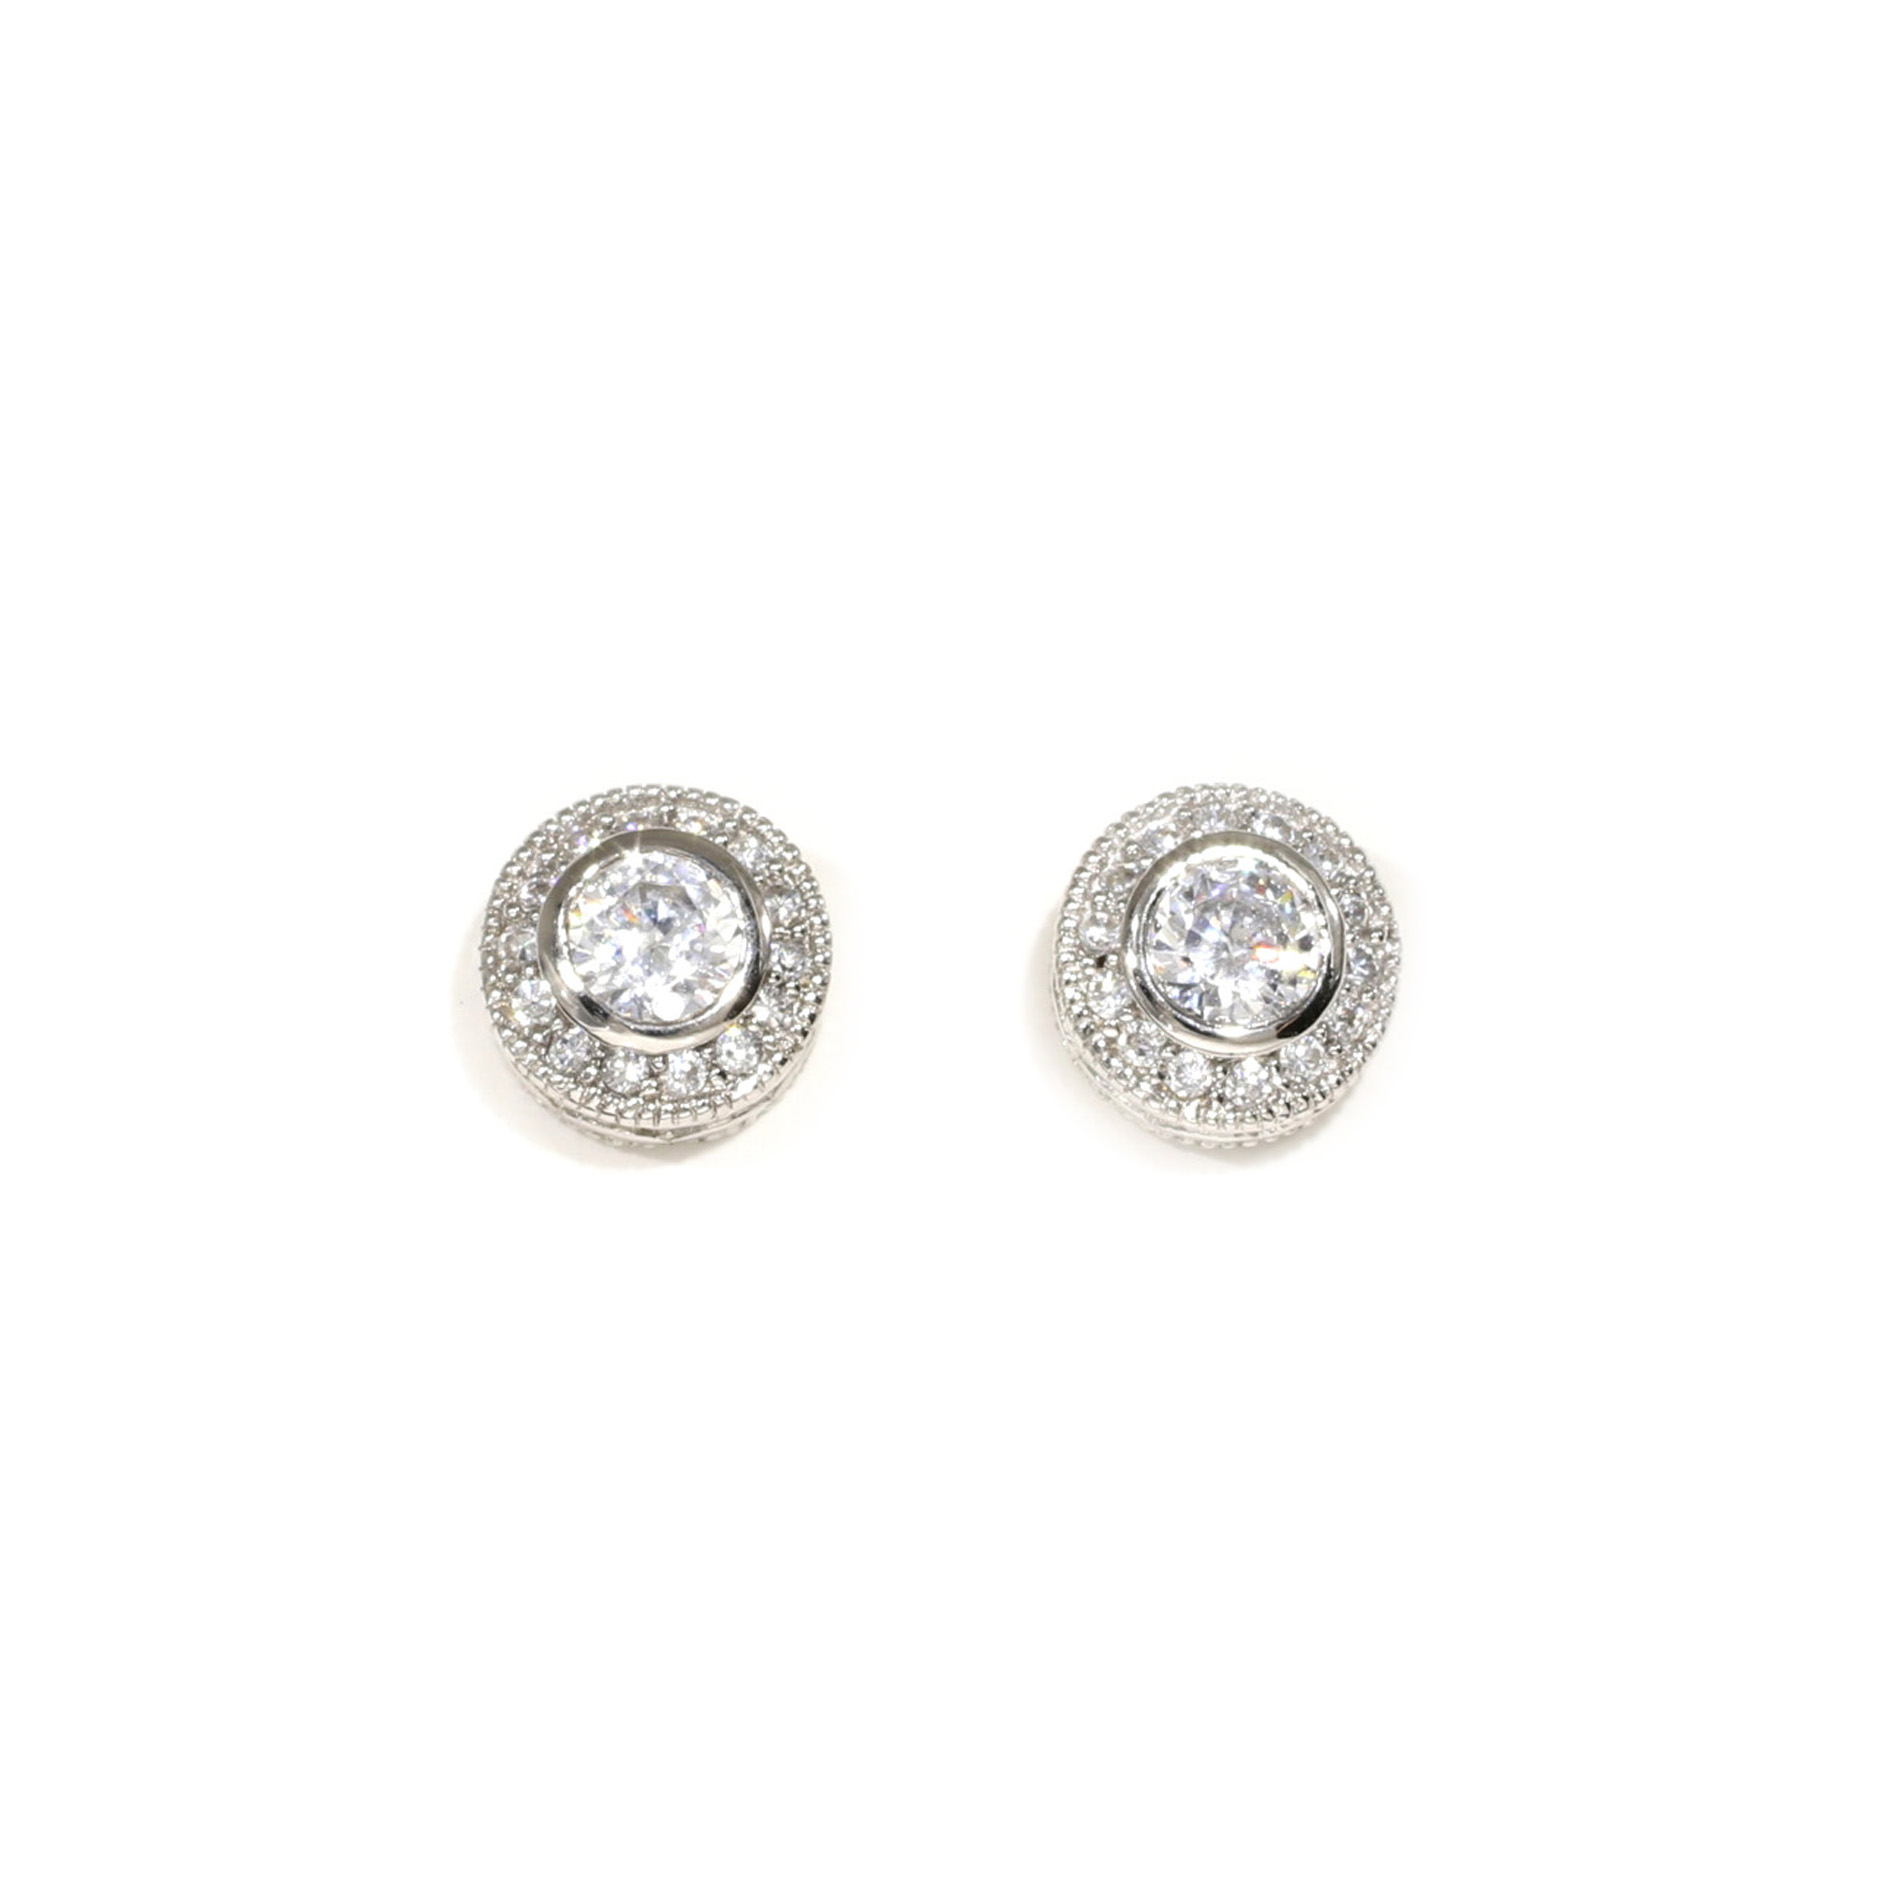 Vintage Halo Stud Earrings